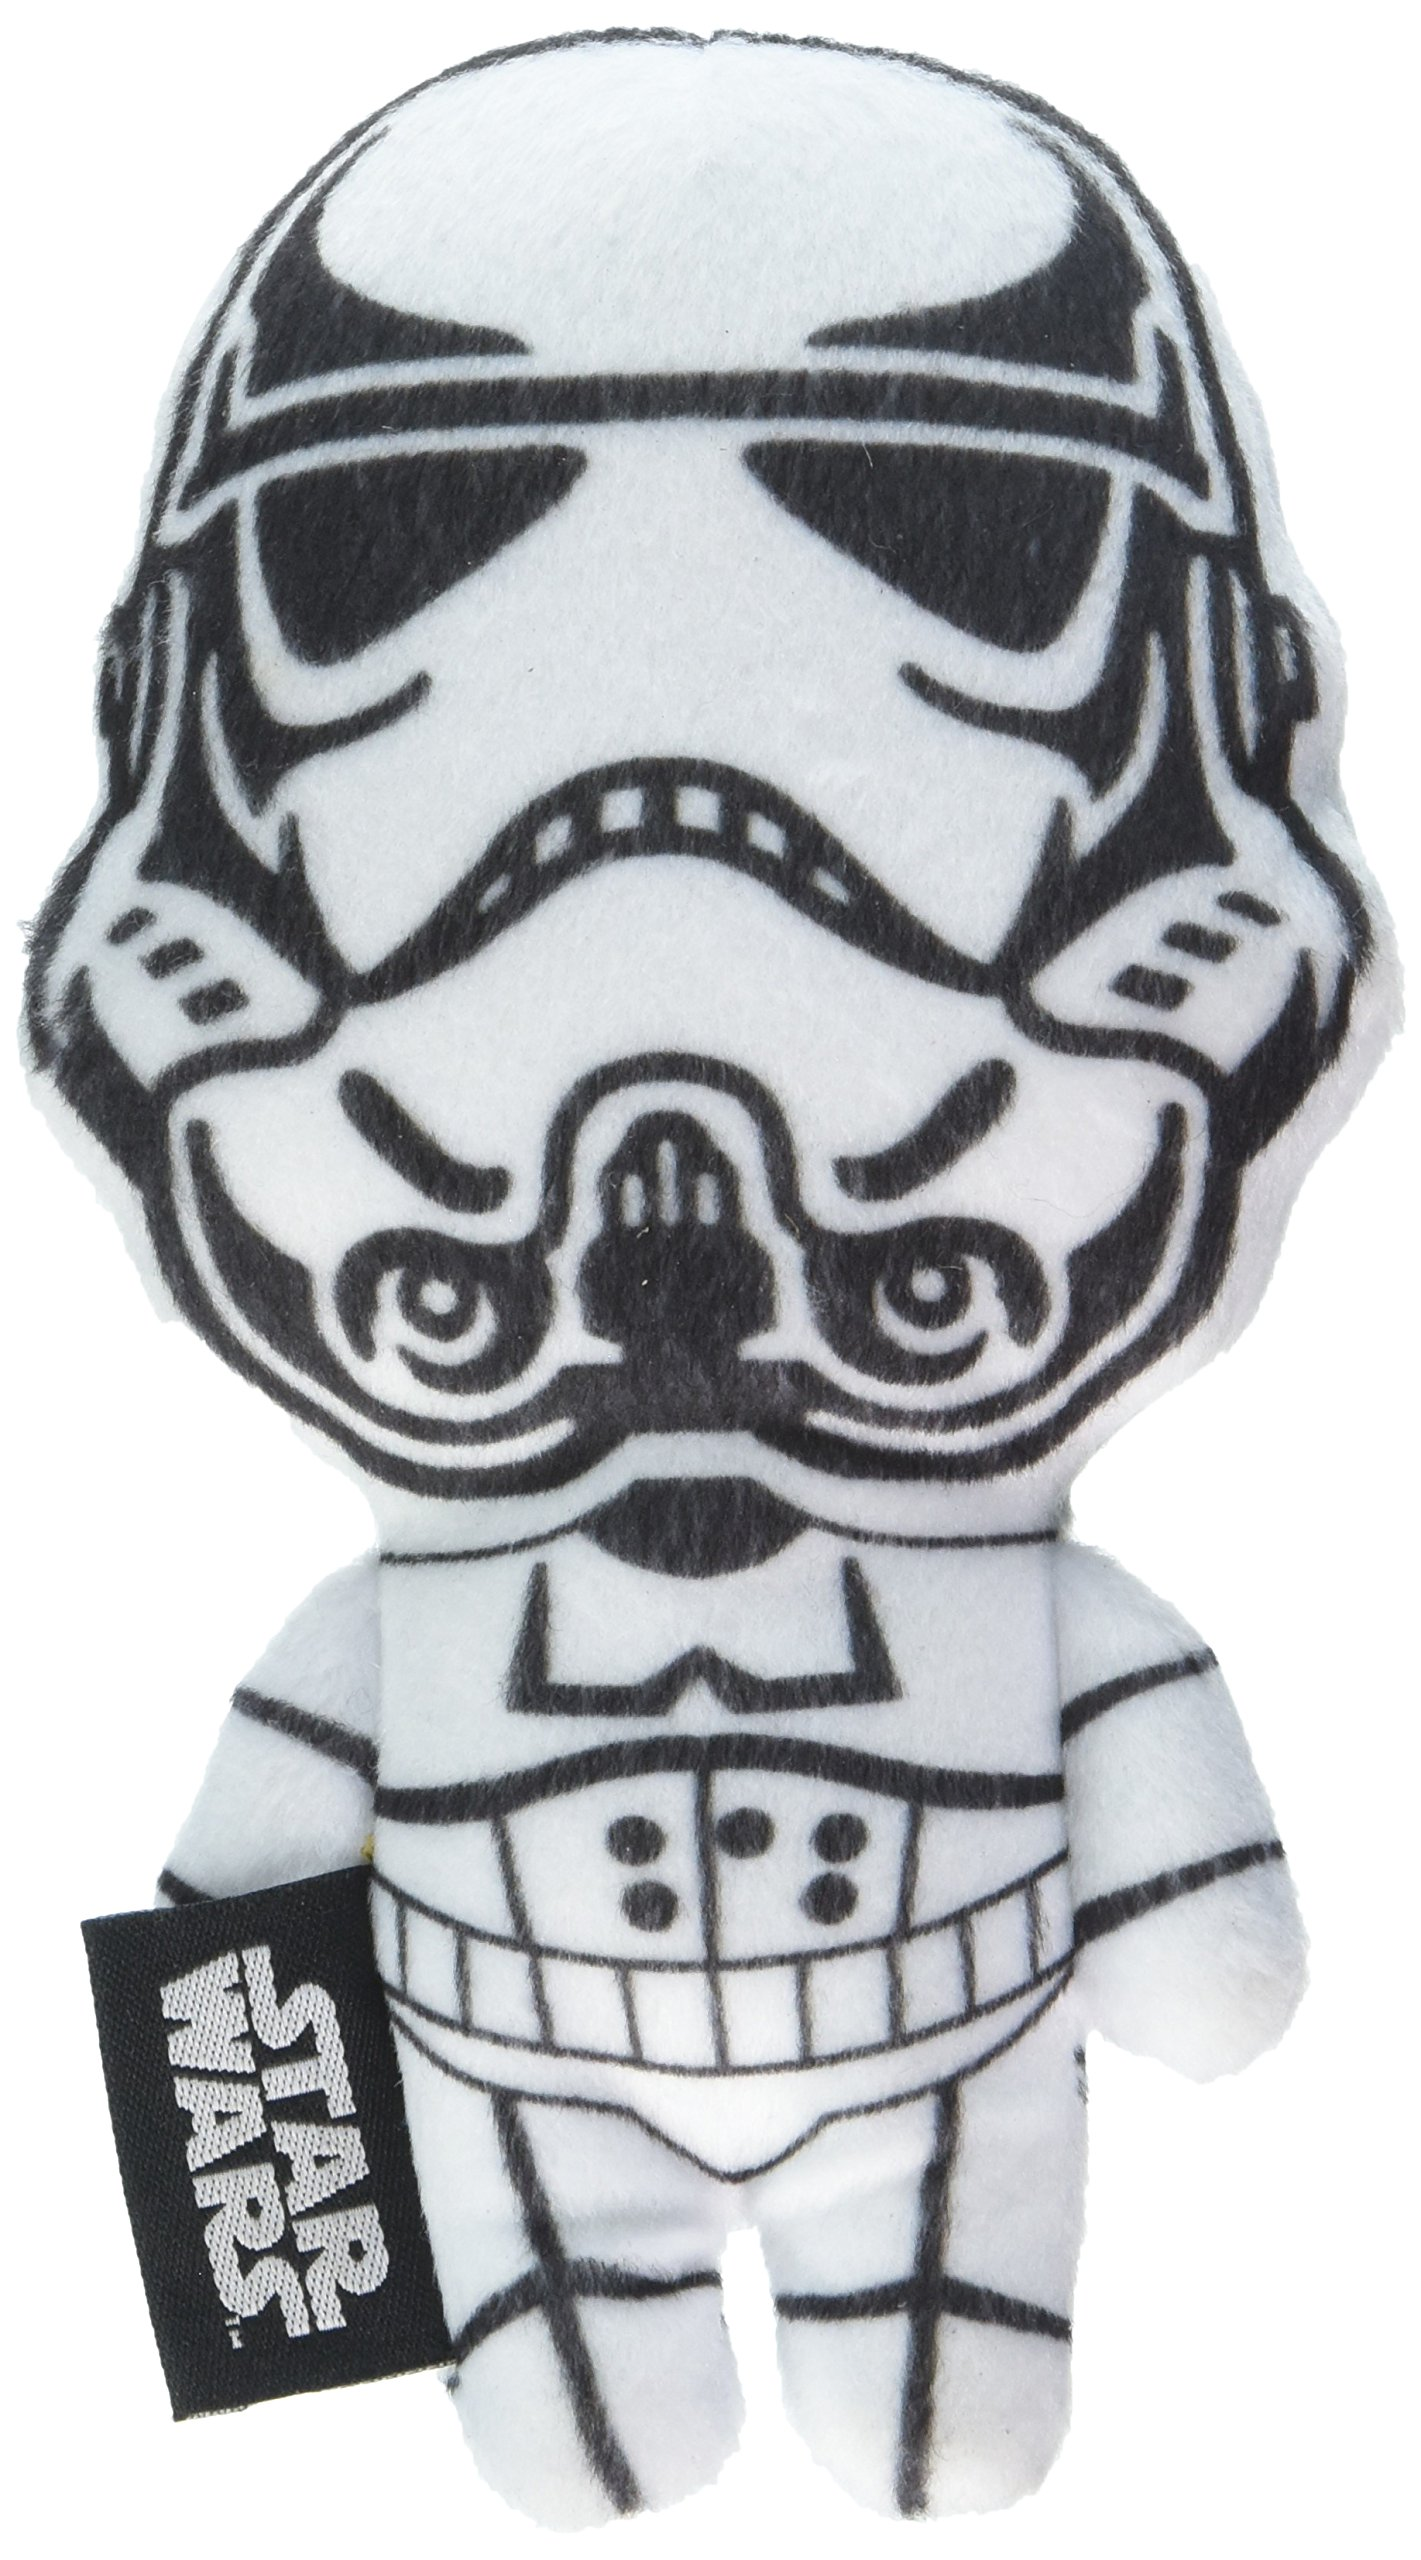 Protect Me Alert Series 79059 Star Wars Toy Storm Trooper